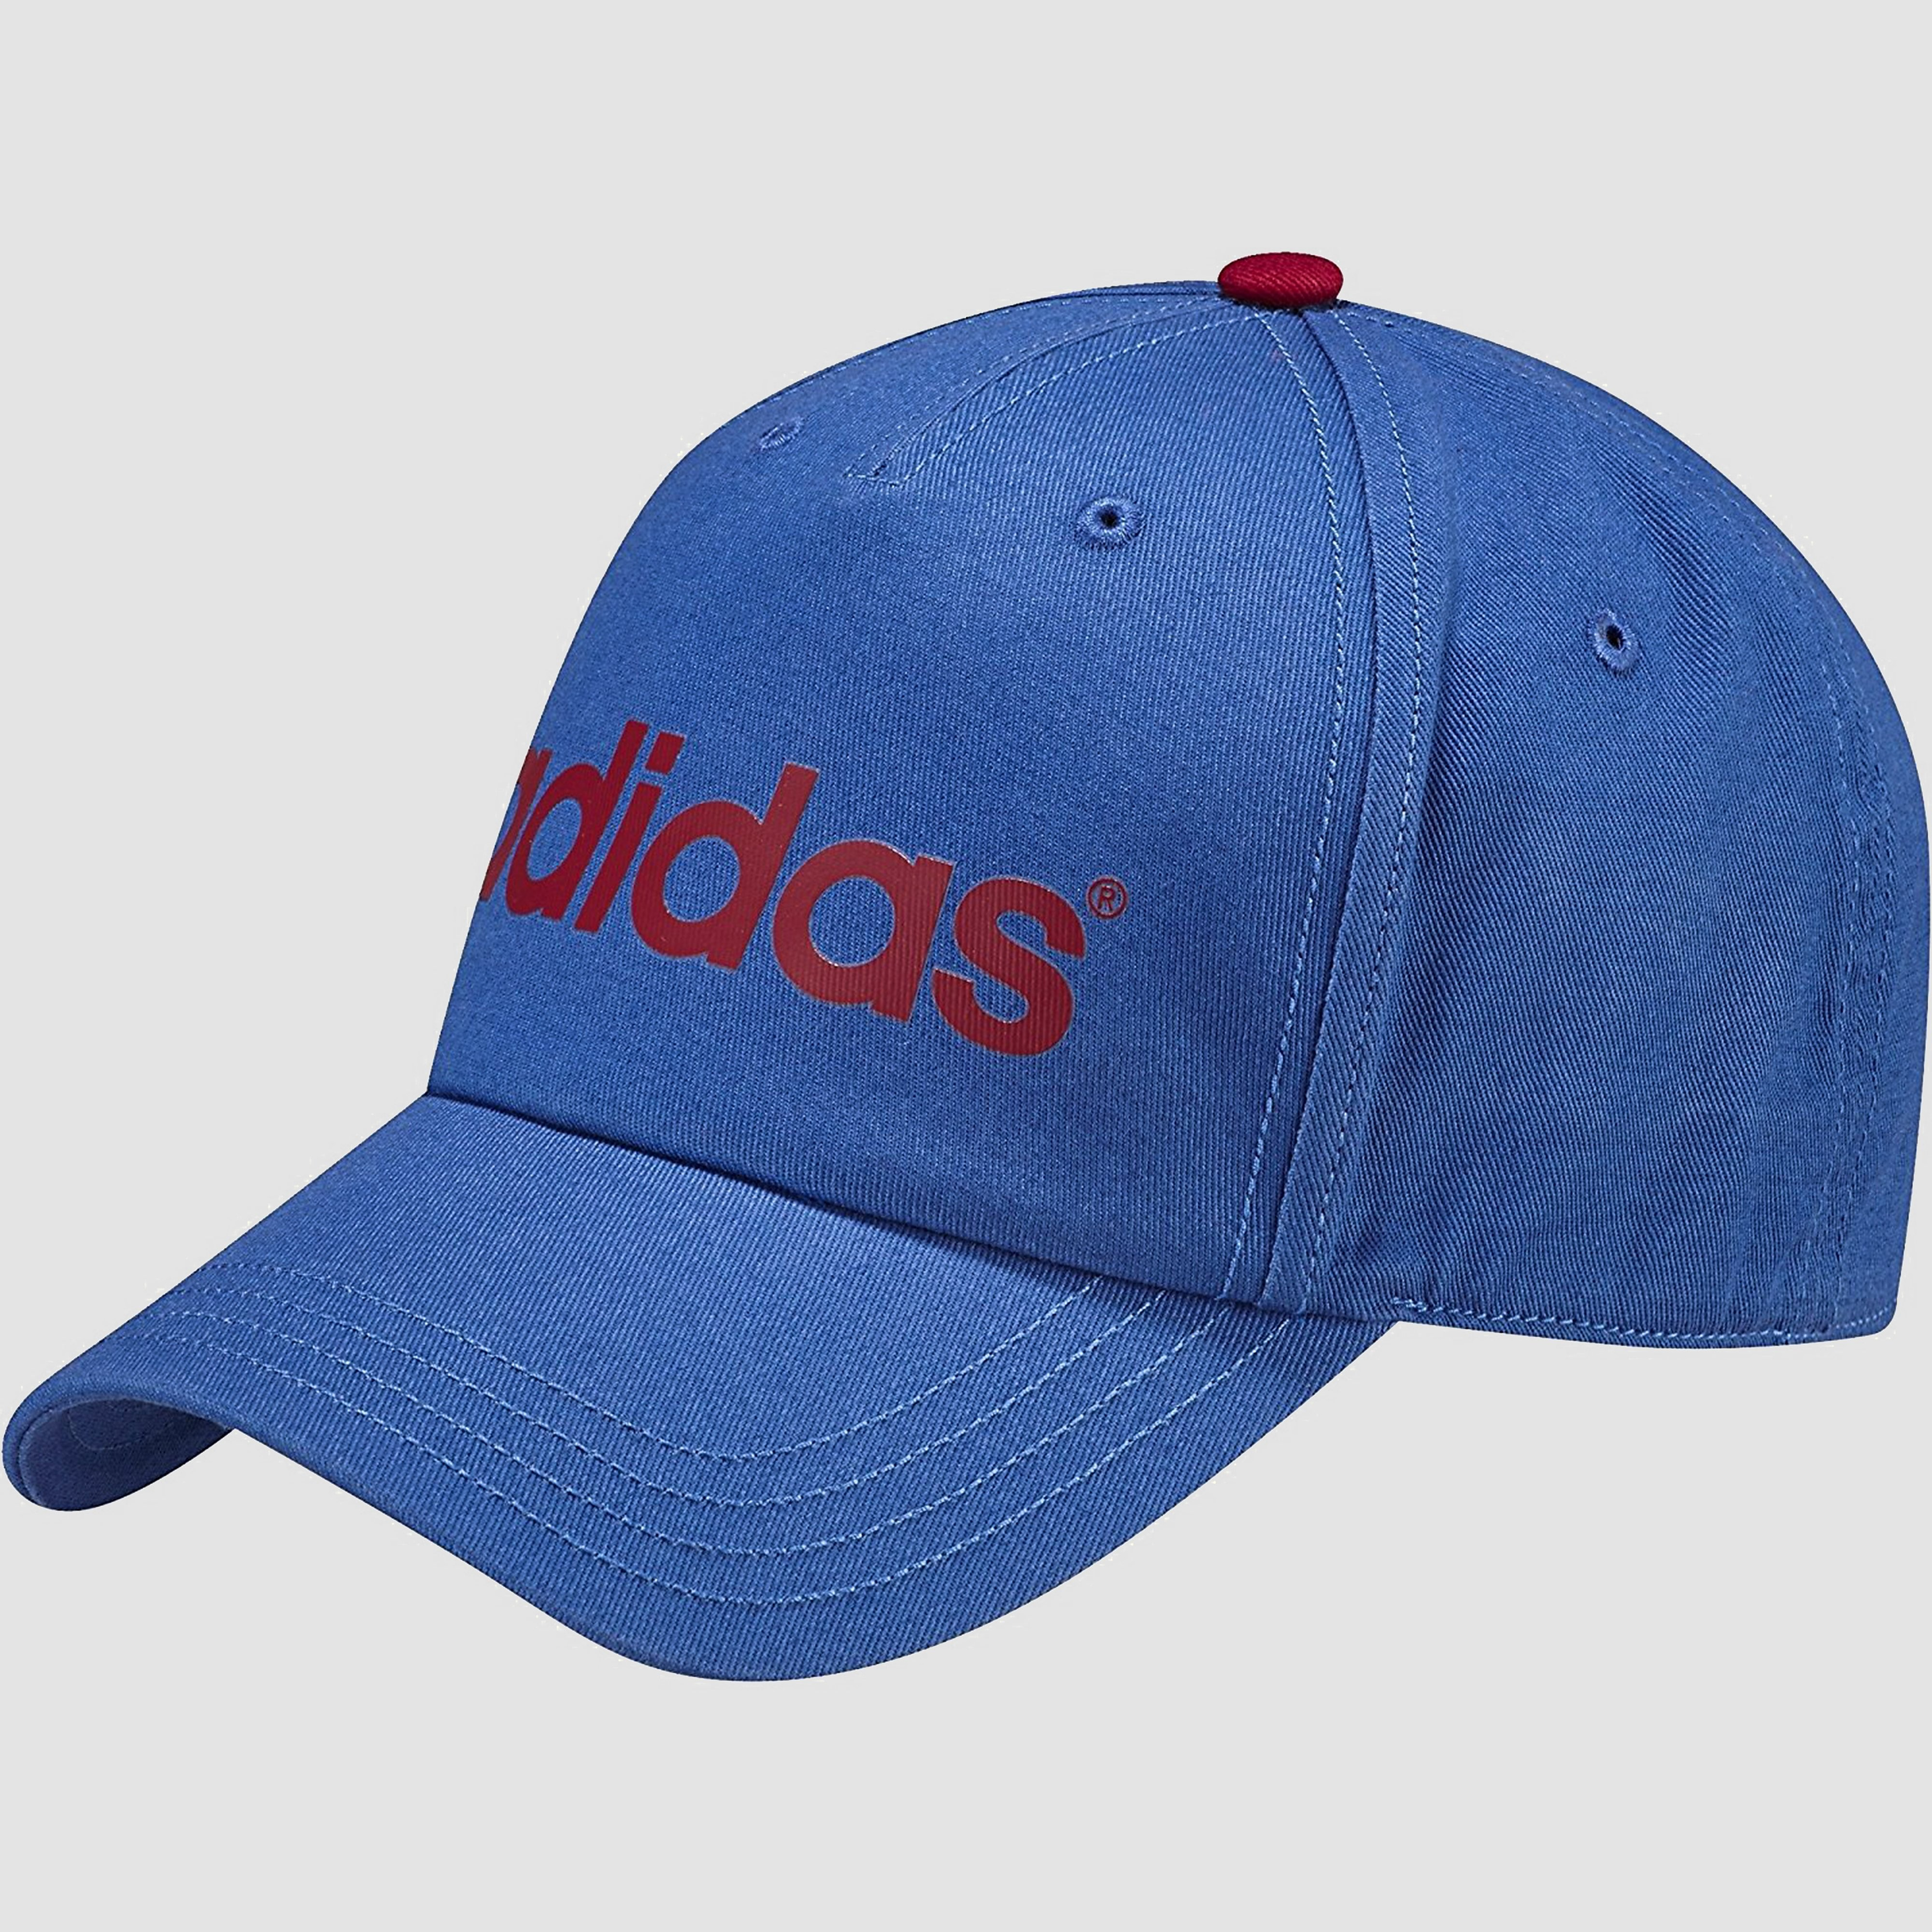 ADIDAS NEO DAILY PET BLAUW